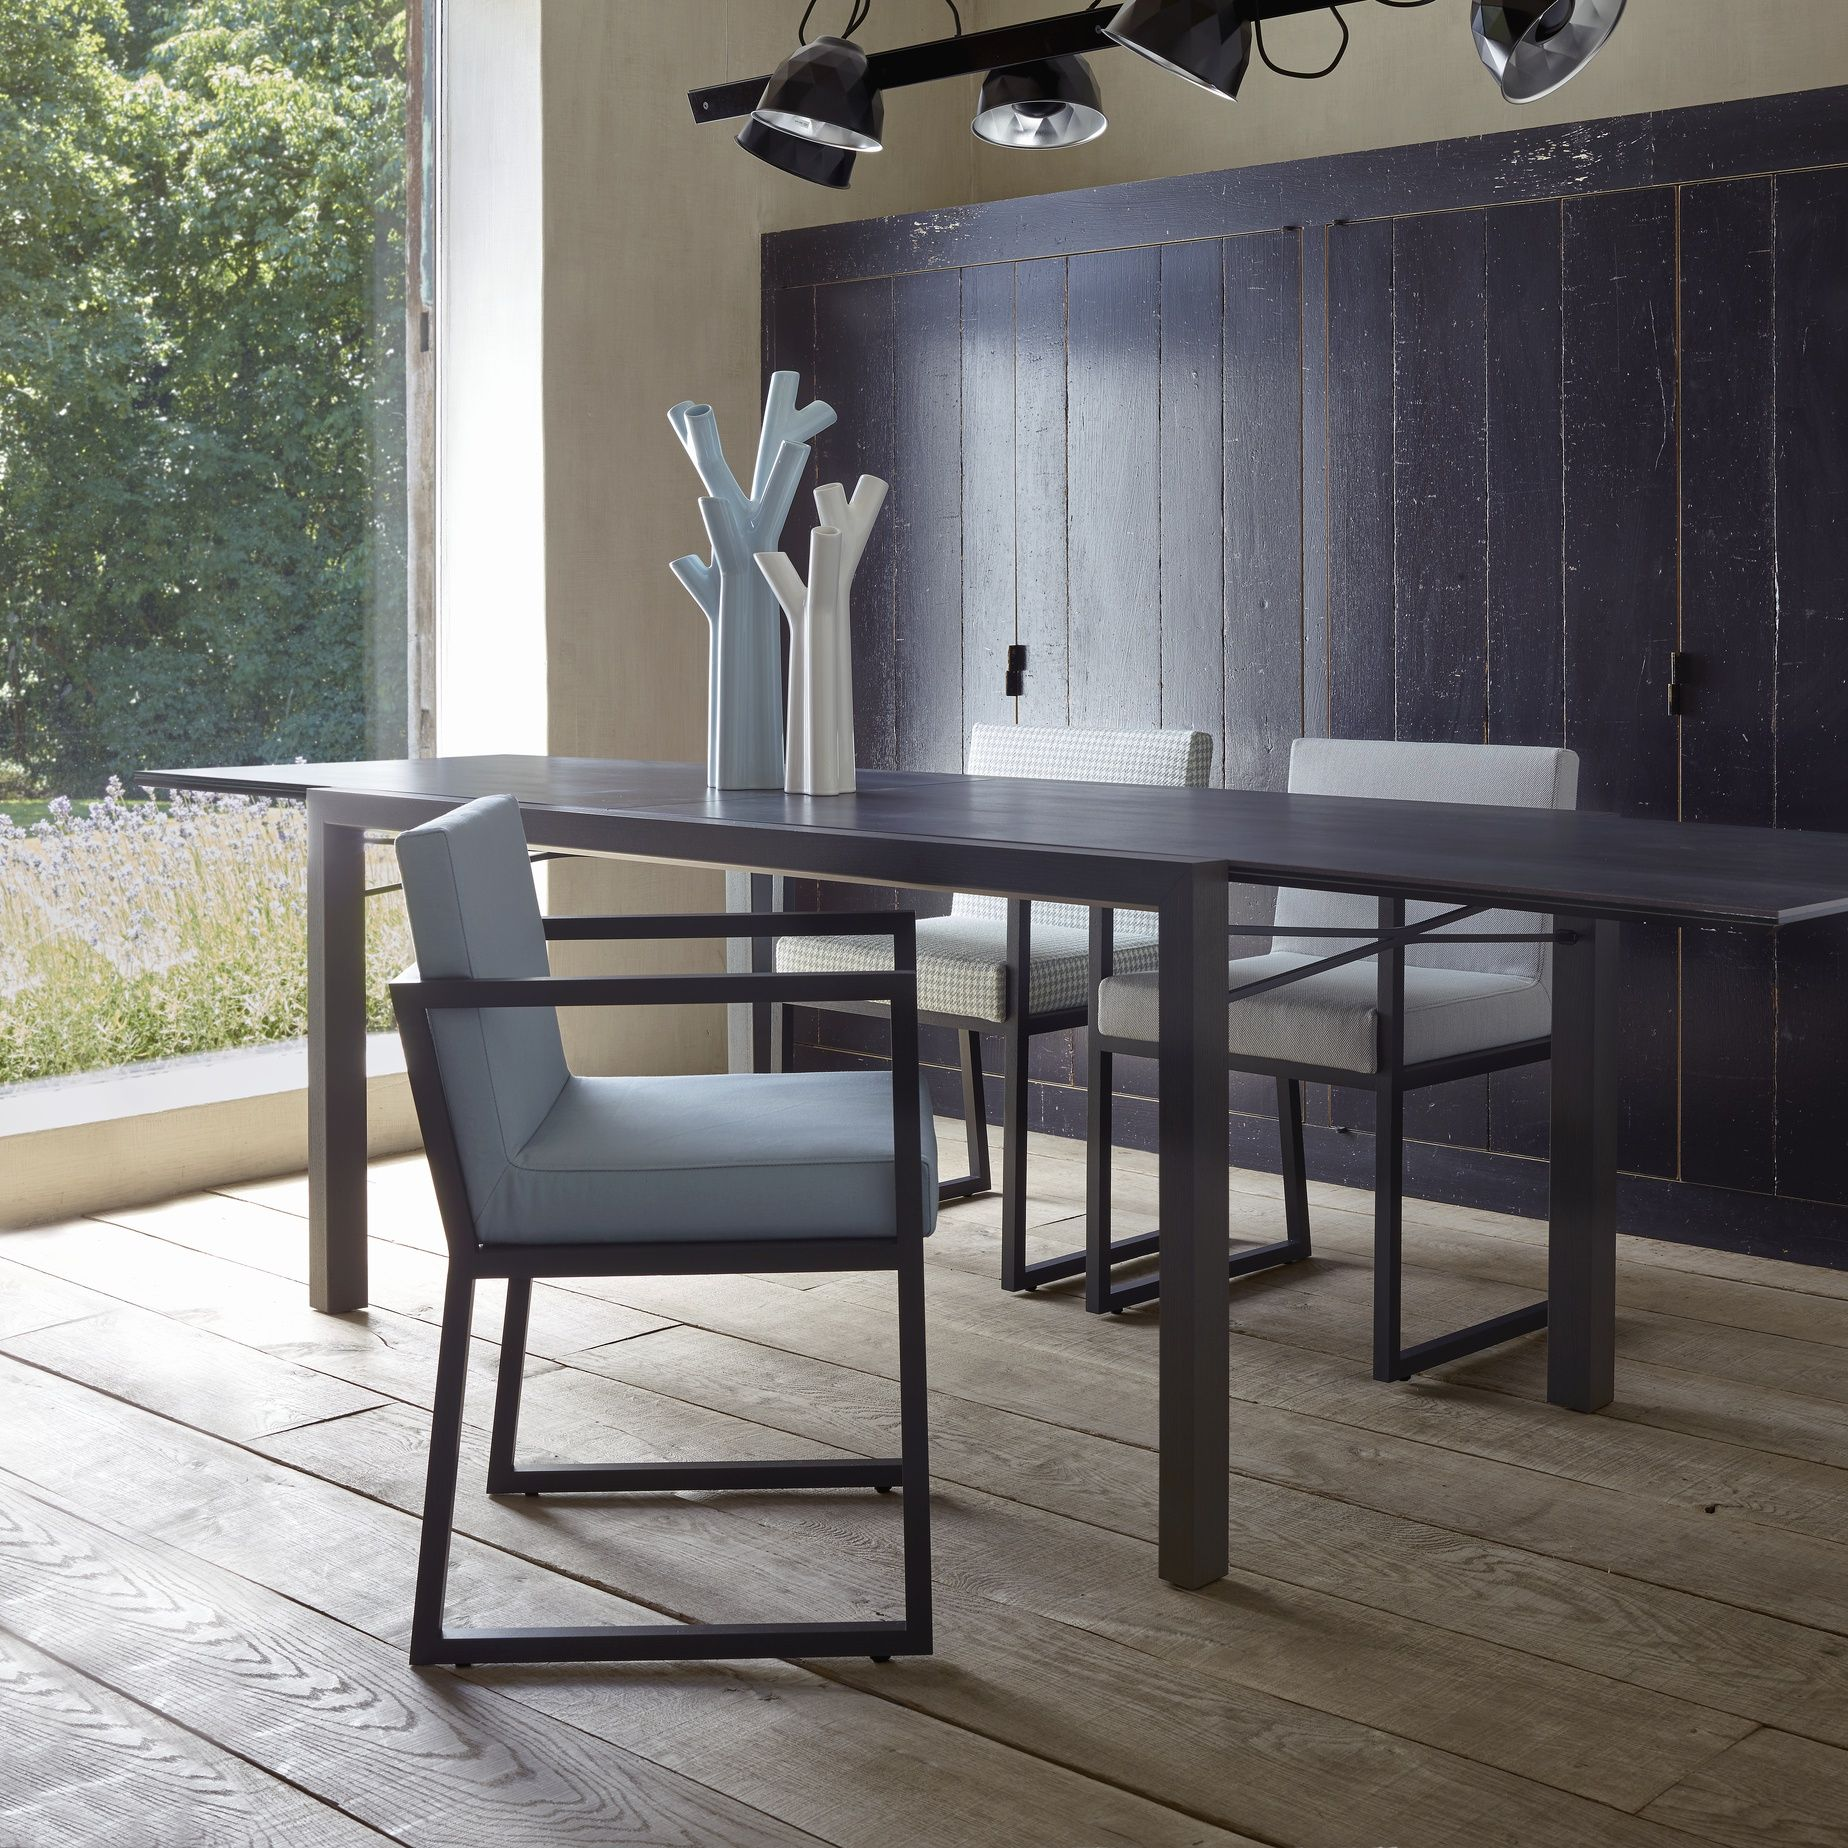 Island dining chair by ligne roset modern dining chairs los angeles - Find This Pin And More On Dining Tables